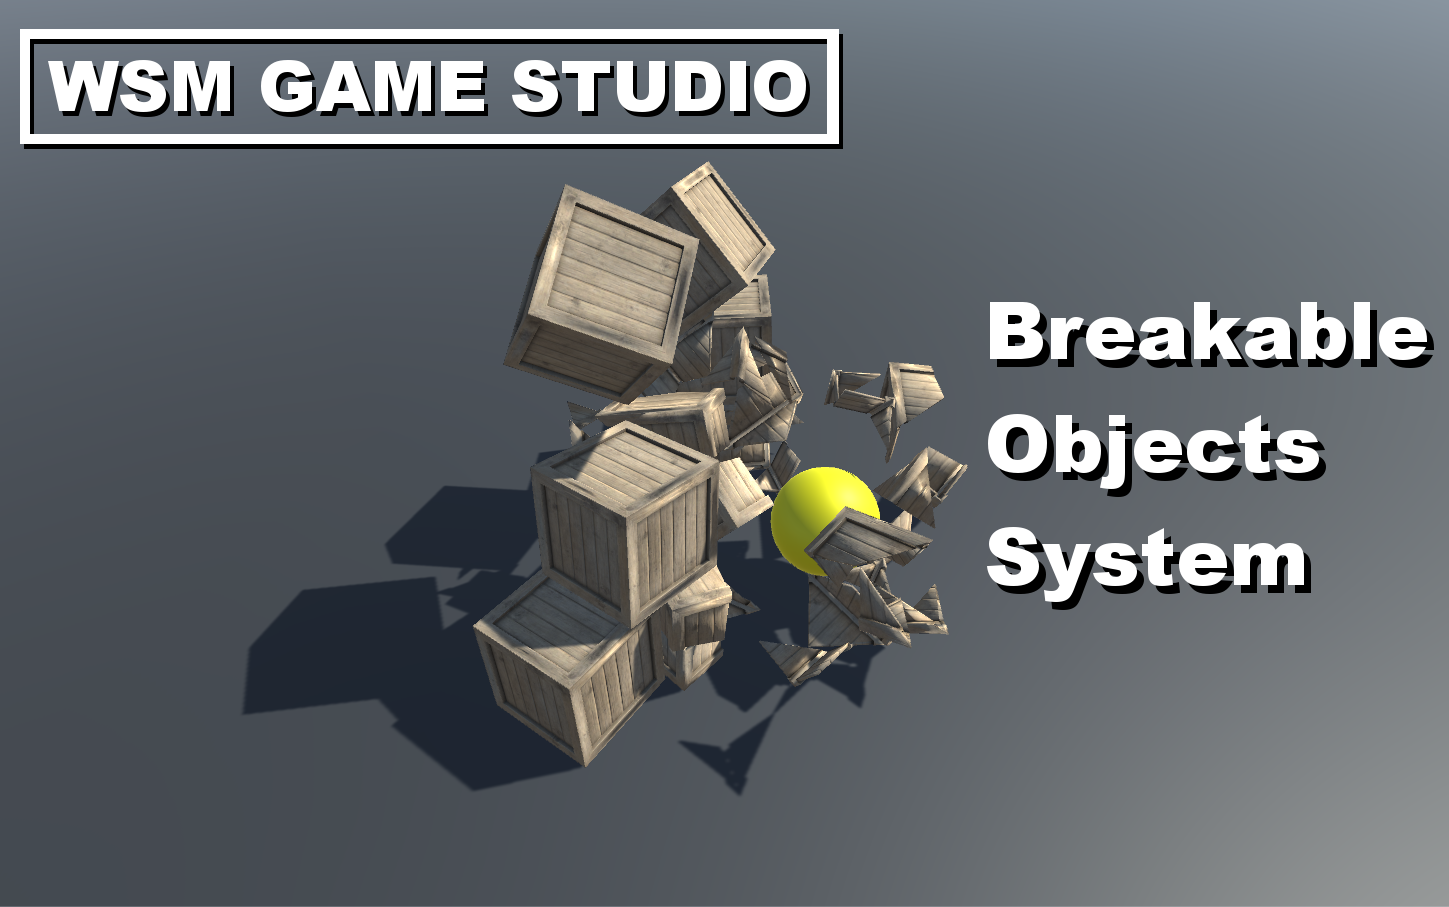 Breakable Objects System